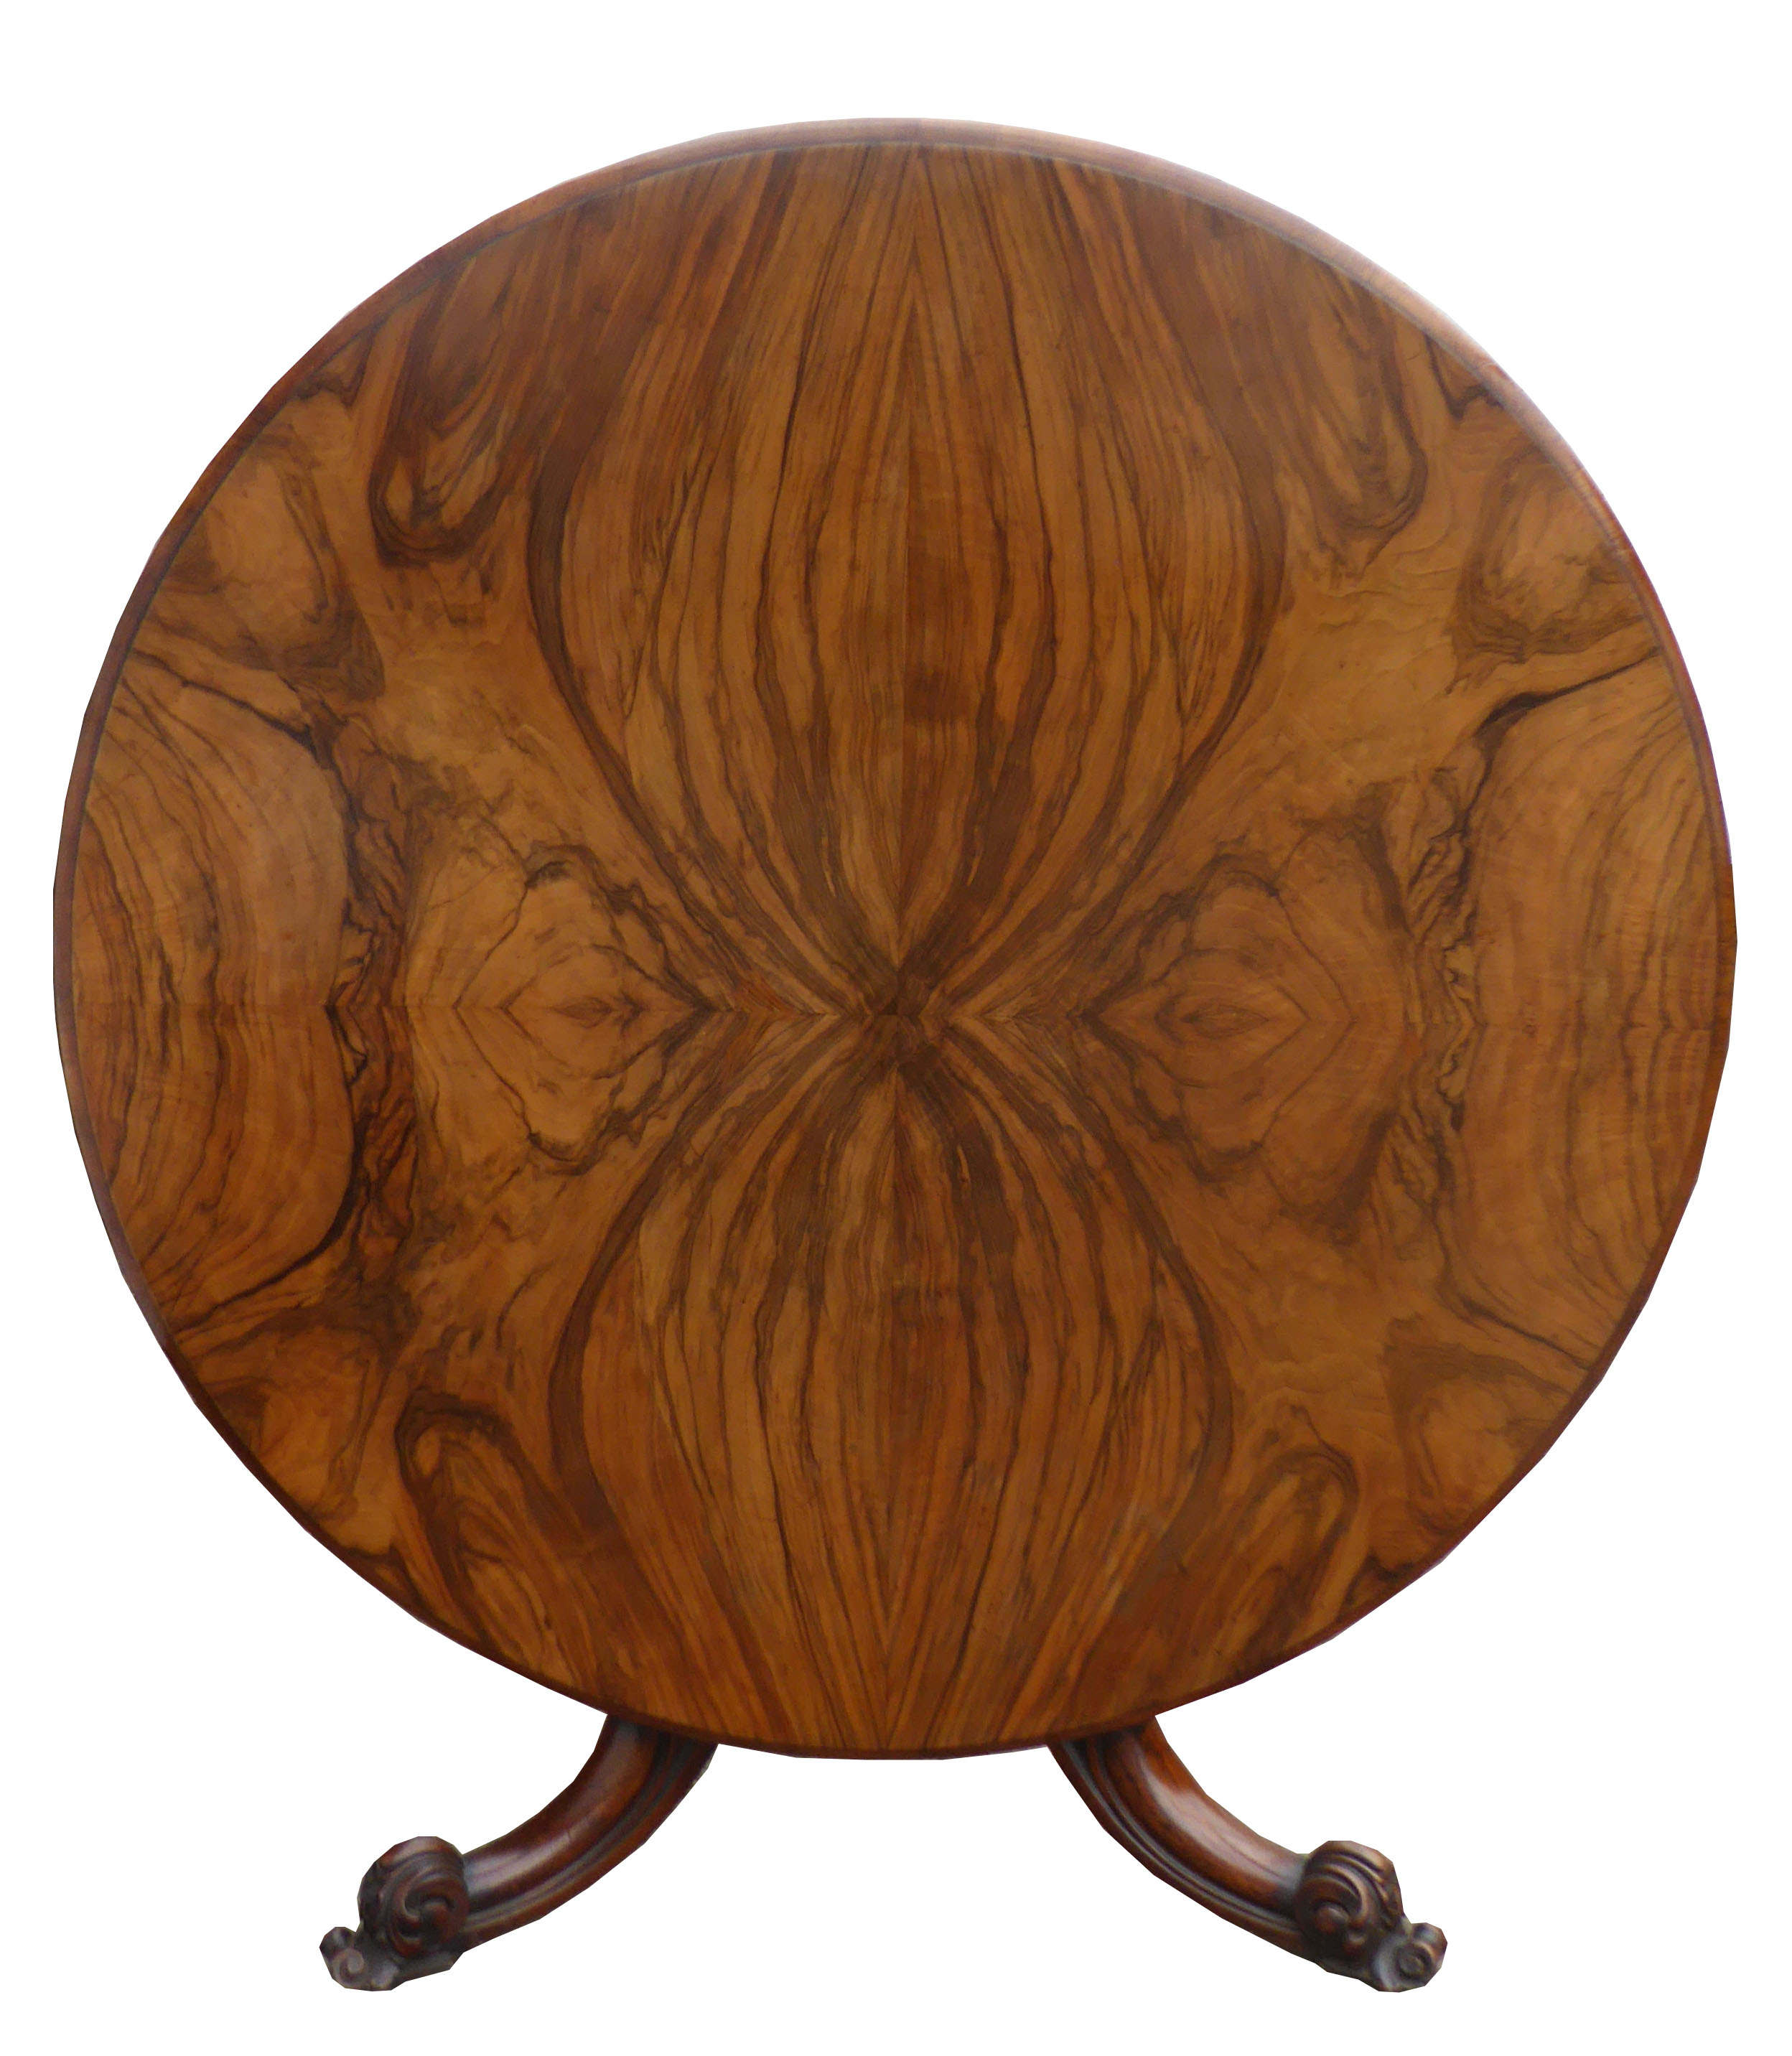 296 A Victorian Figured Walnut Breakfast Table SXX